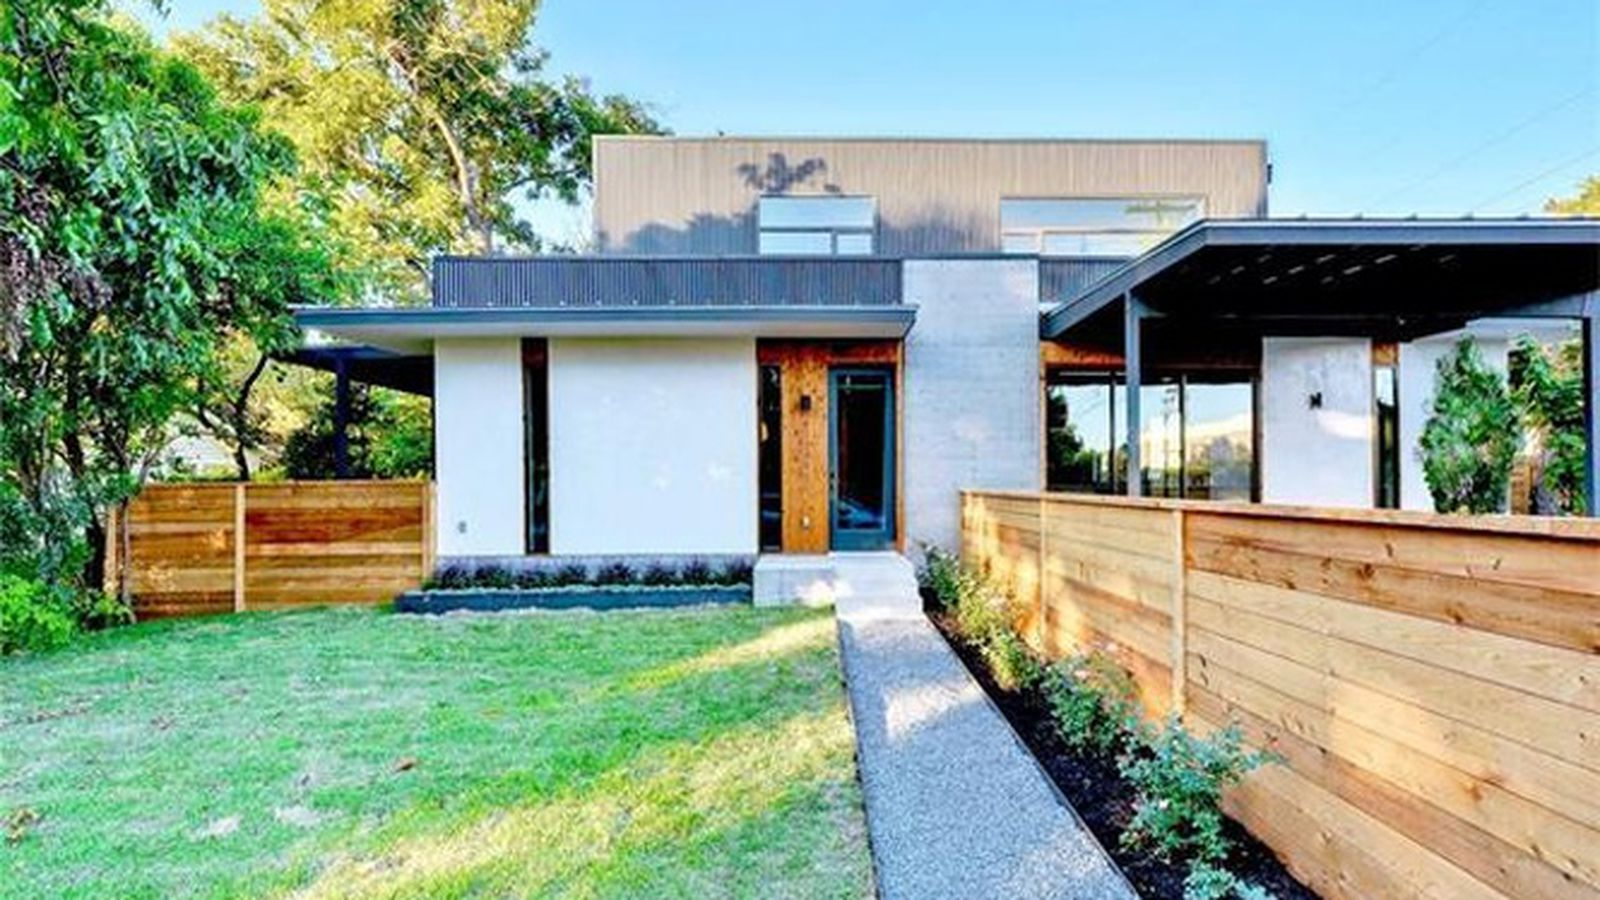 Mod new home by lauded austin architect hits the market for Modern houses for sale austin